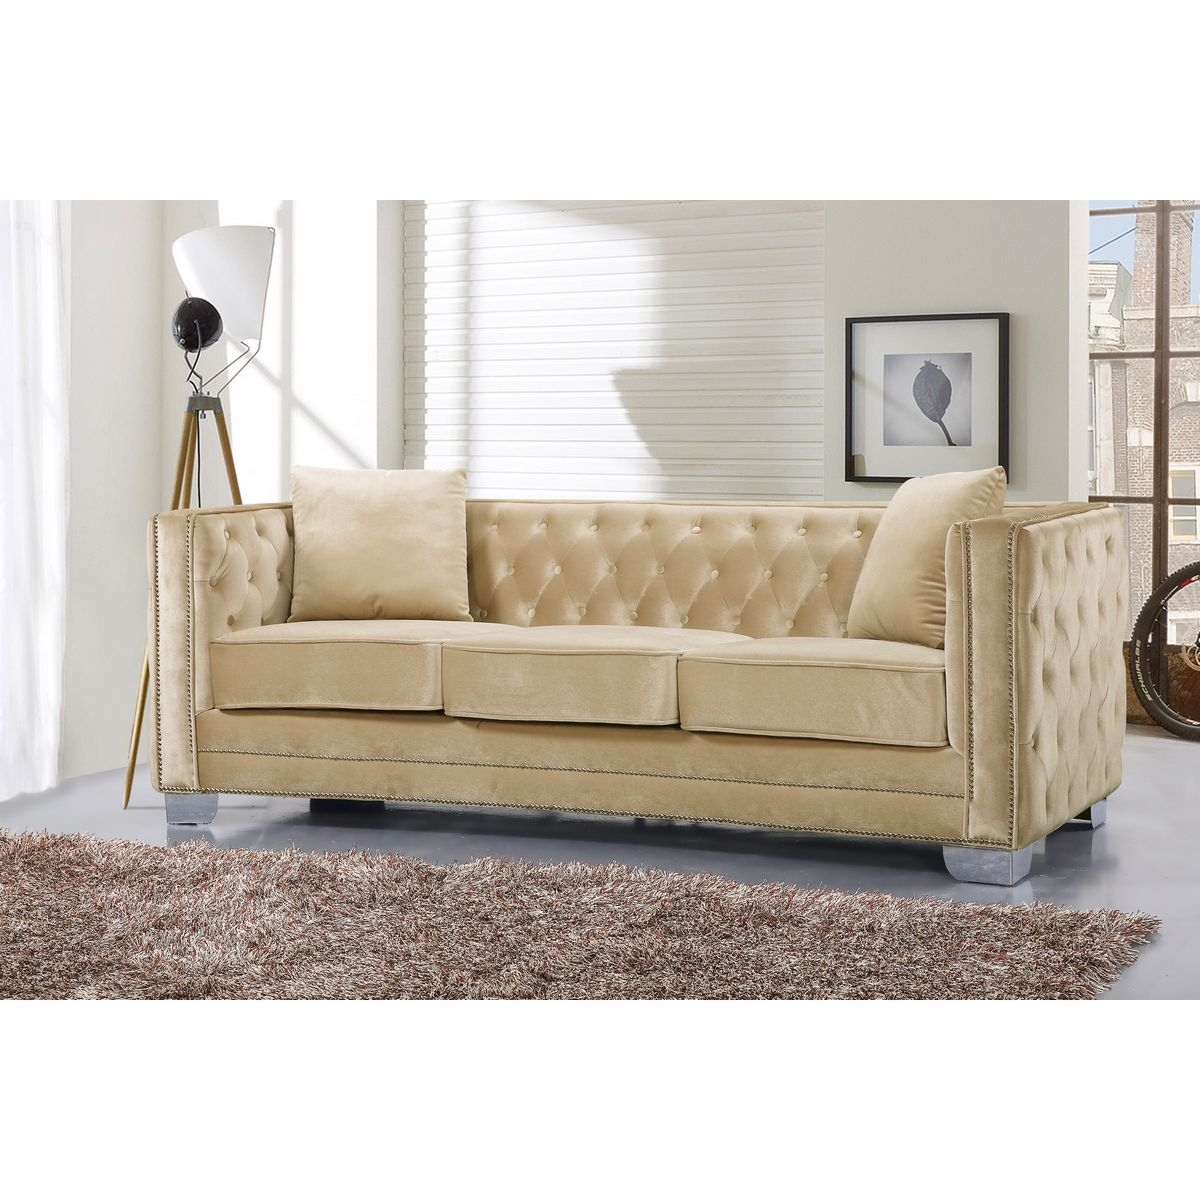 Meridian Furniture Reese Beige Velvet Sofa W/ Tufted Back U0026 Arms On Metal  Legs